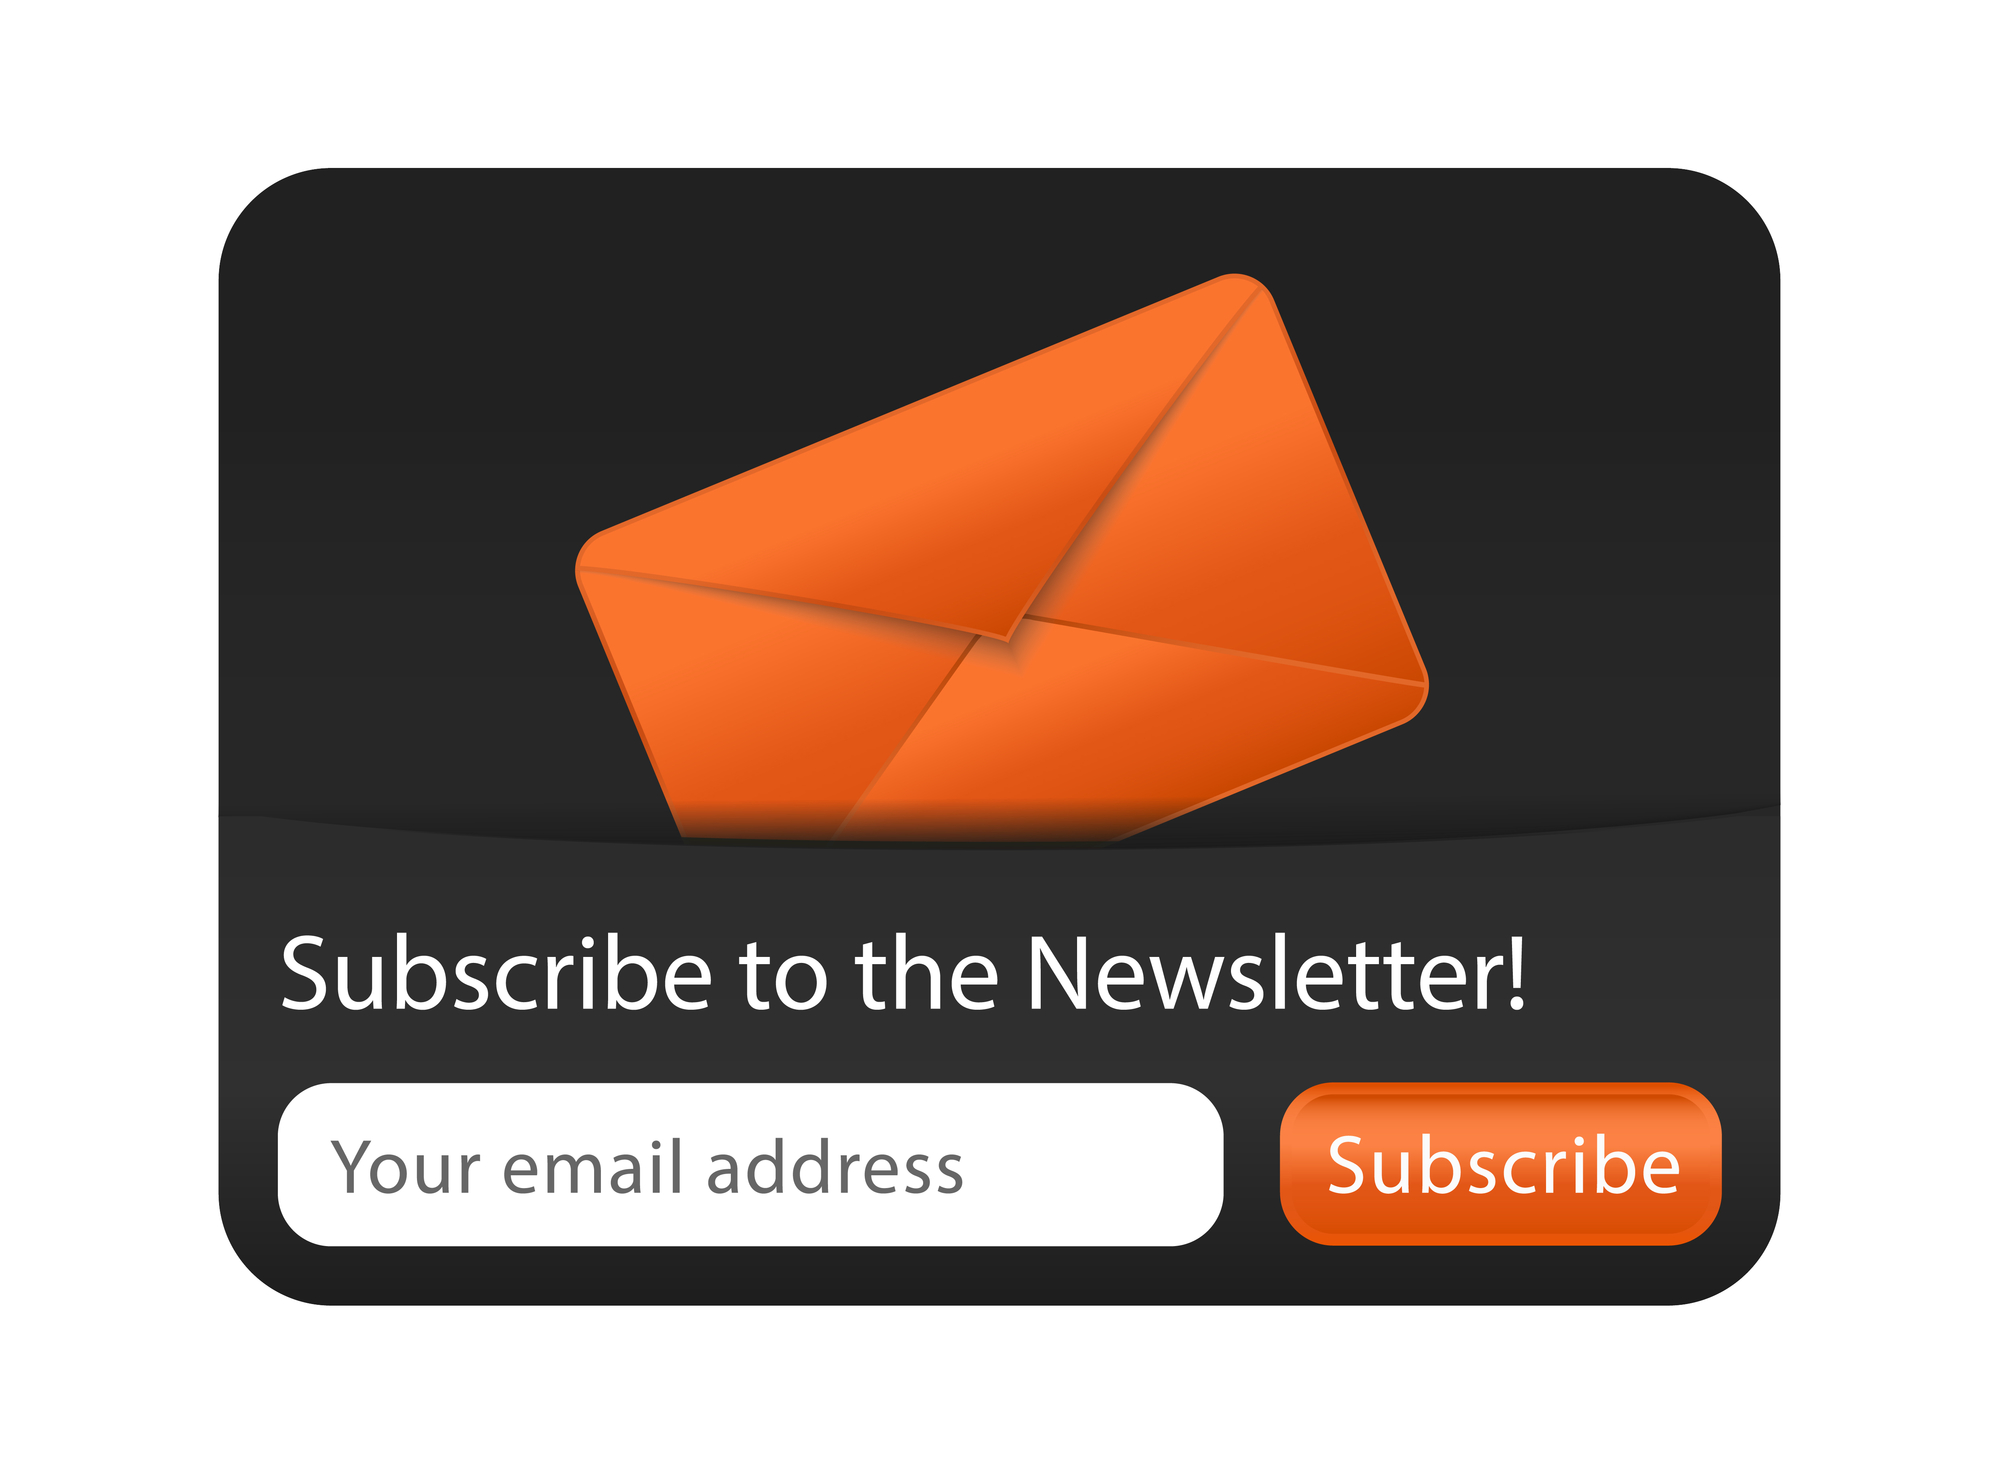 How to Get More Email Subscriptions